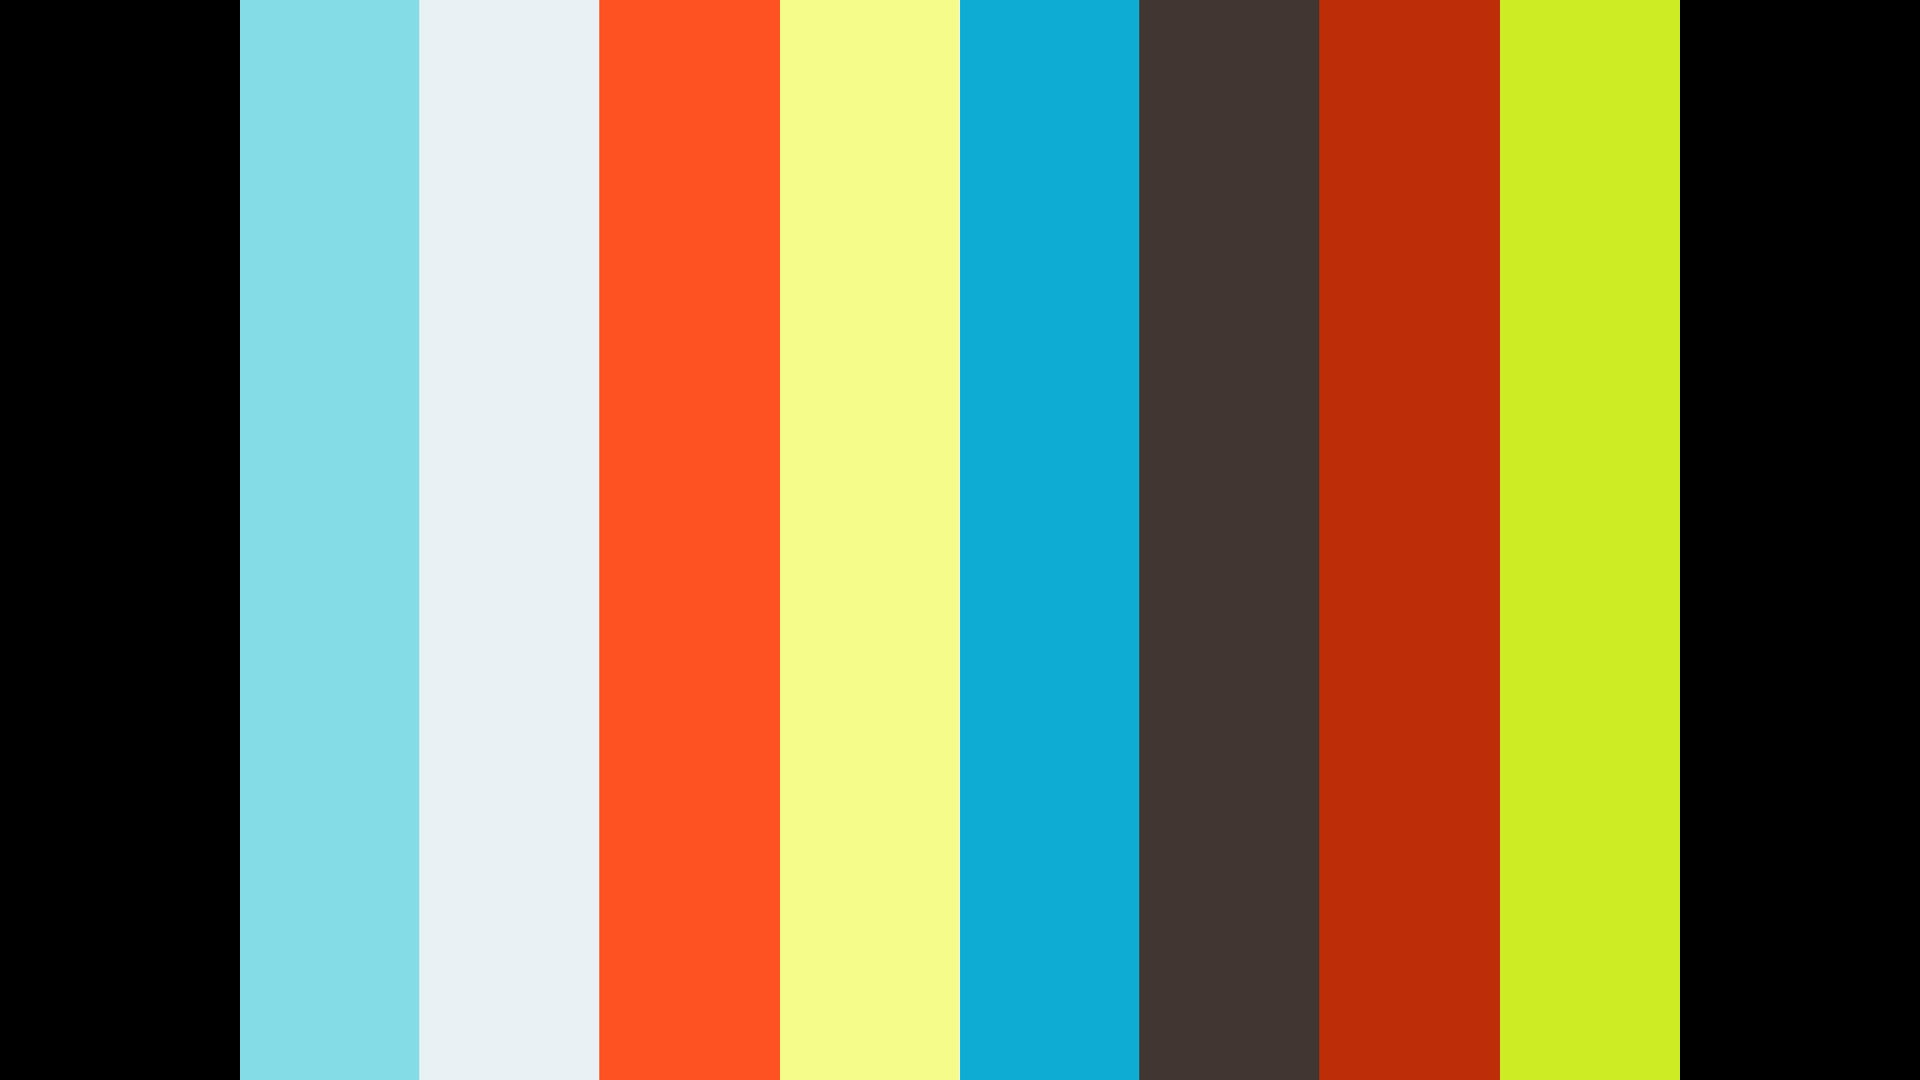 3 Alternative Ways to Find Hope & Healing on Welcome Home Vietnam Veterans Day